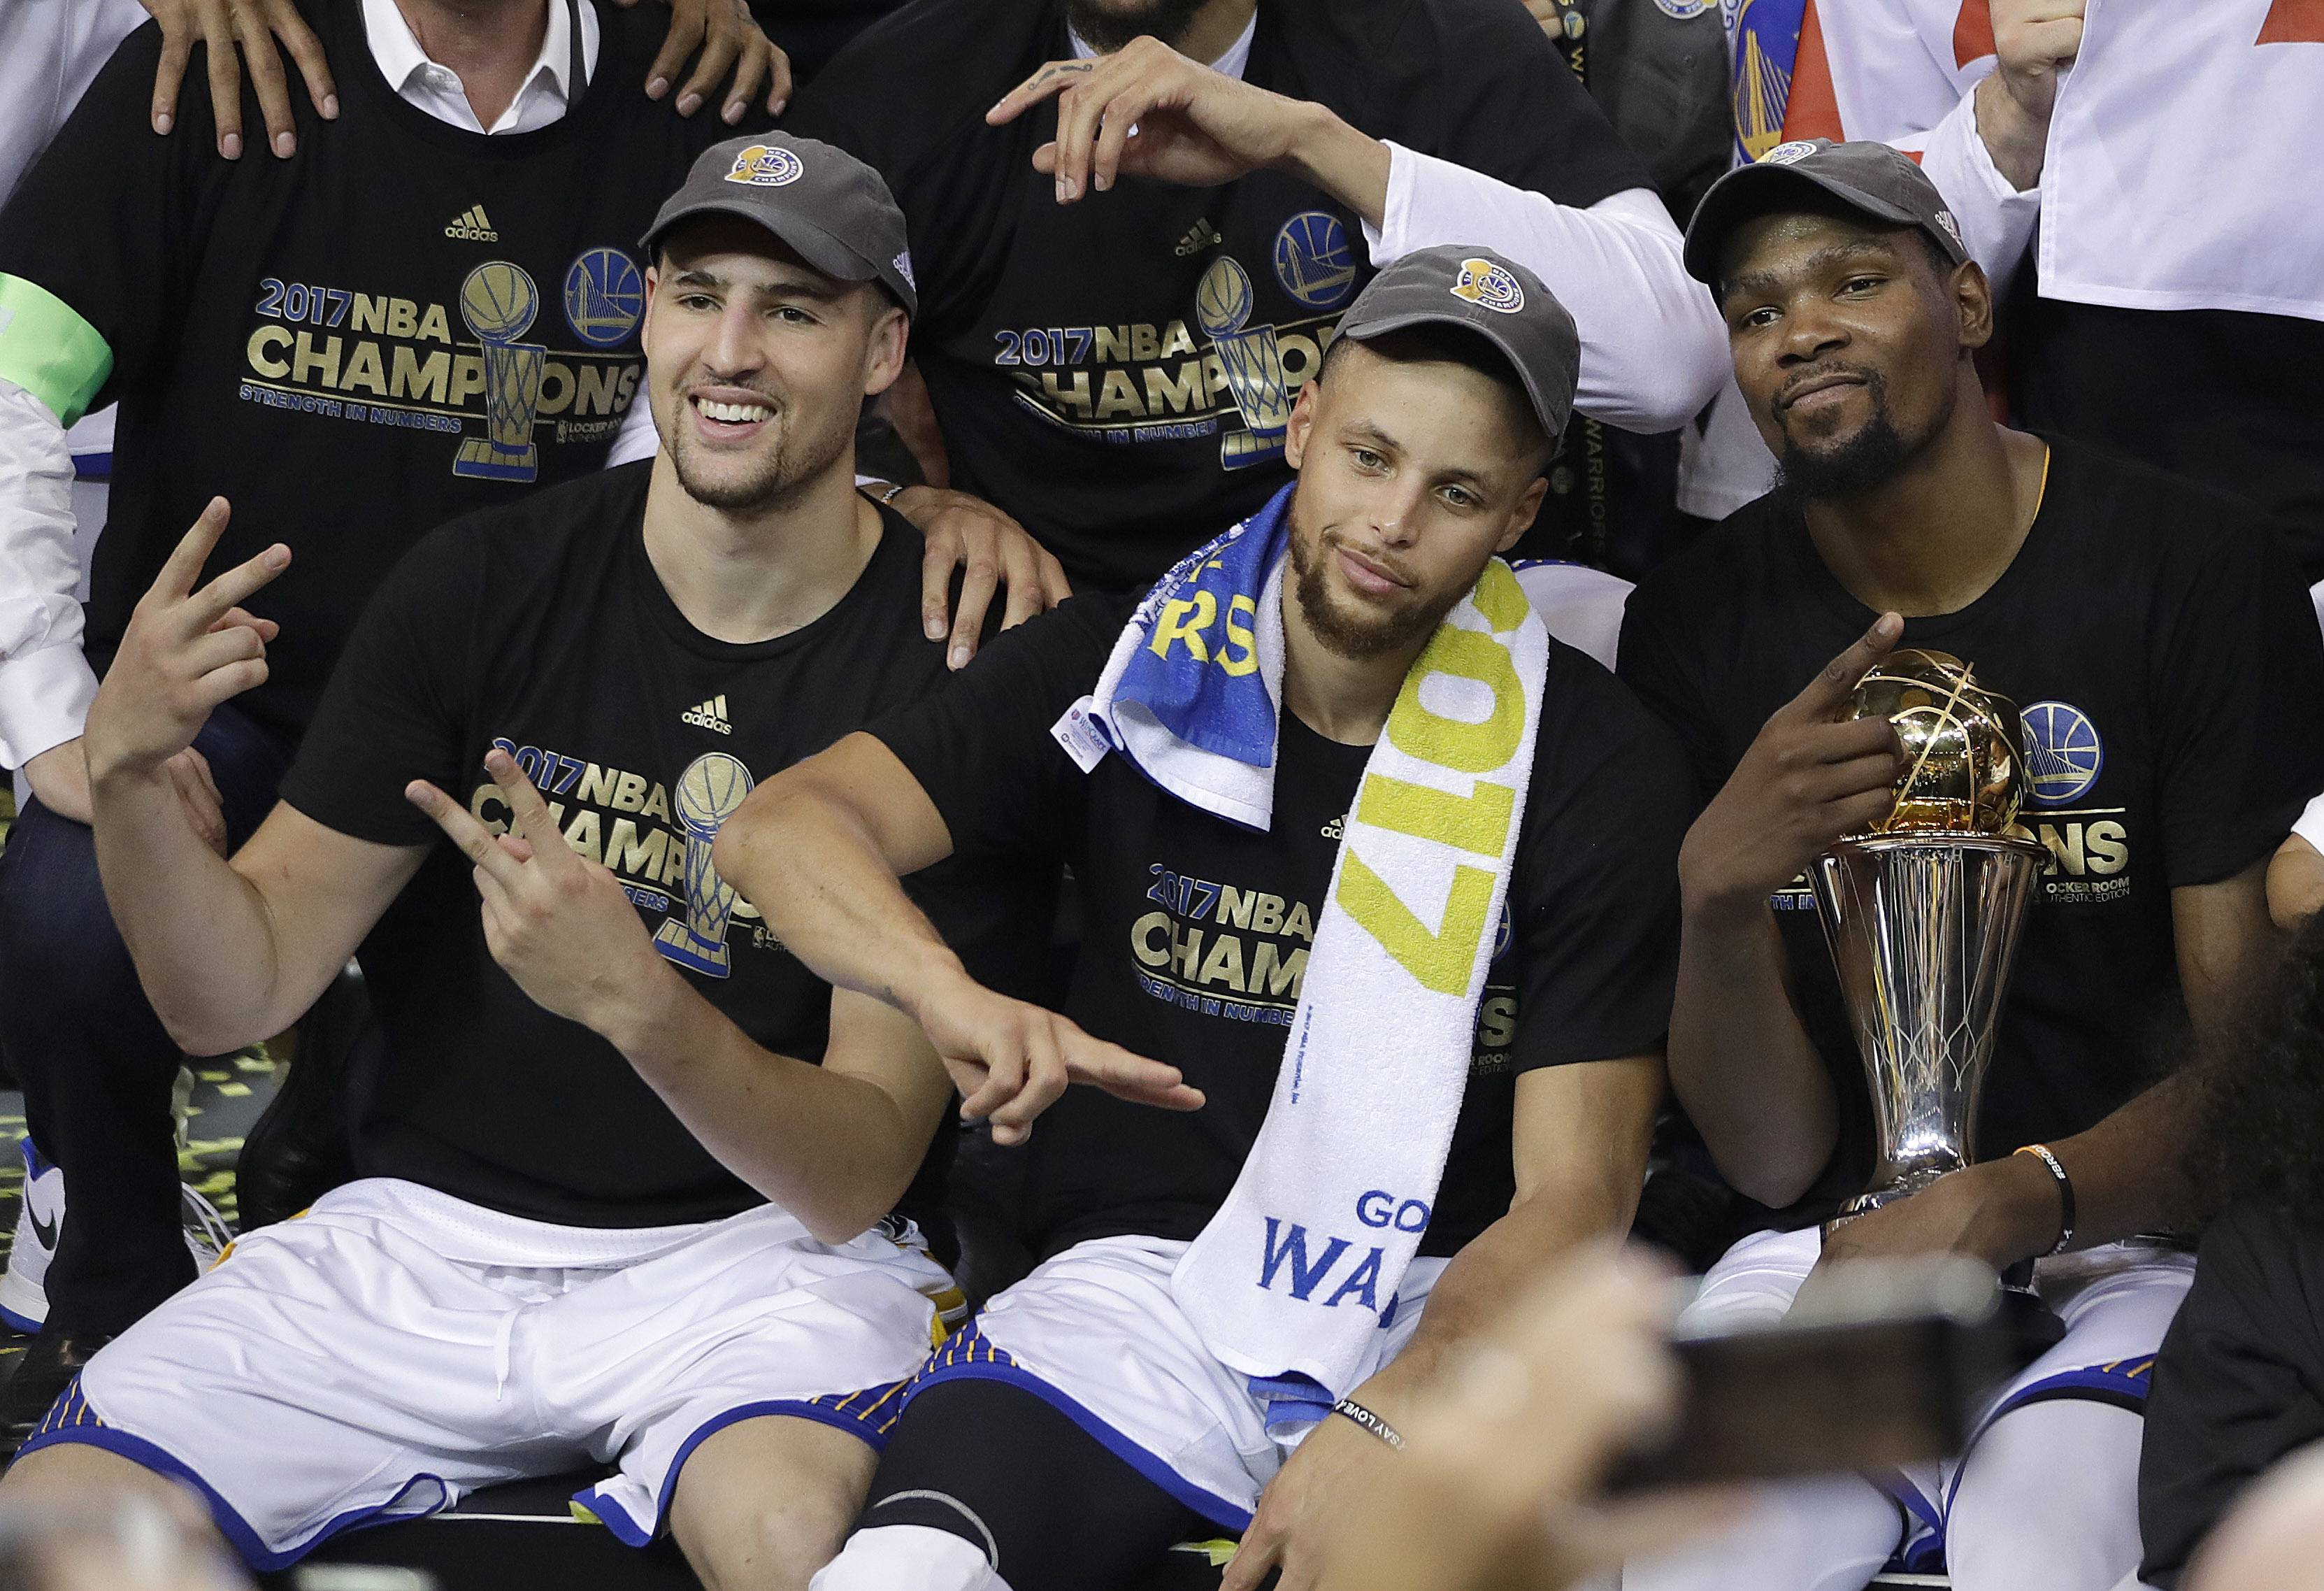 Golden State Warriors guard Klay Thompson, from left, guard Stephen Curry and forward Kevin Durant celebrate after Game 5 of basketball's NBA Finals against the Cleveland Cavaliers in Oakland, Calif., Monday, June 12, 2017. The Warriors won 129-120 to win the NBA championship.